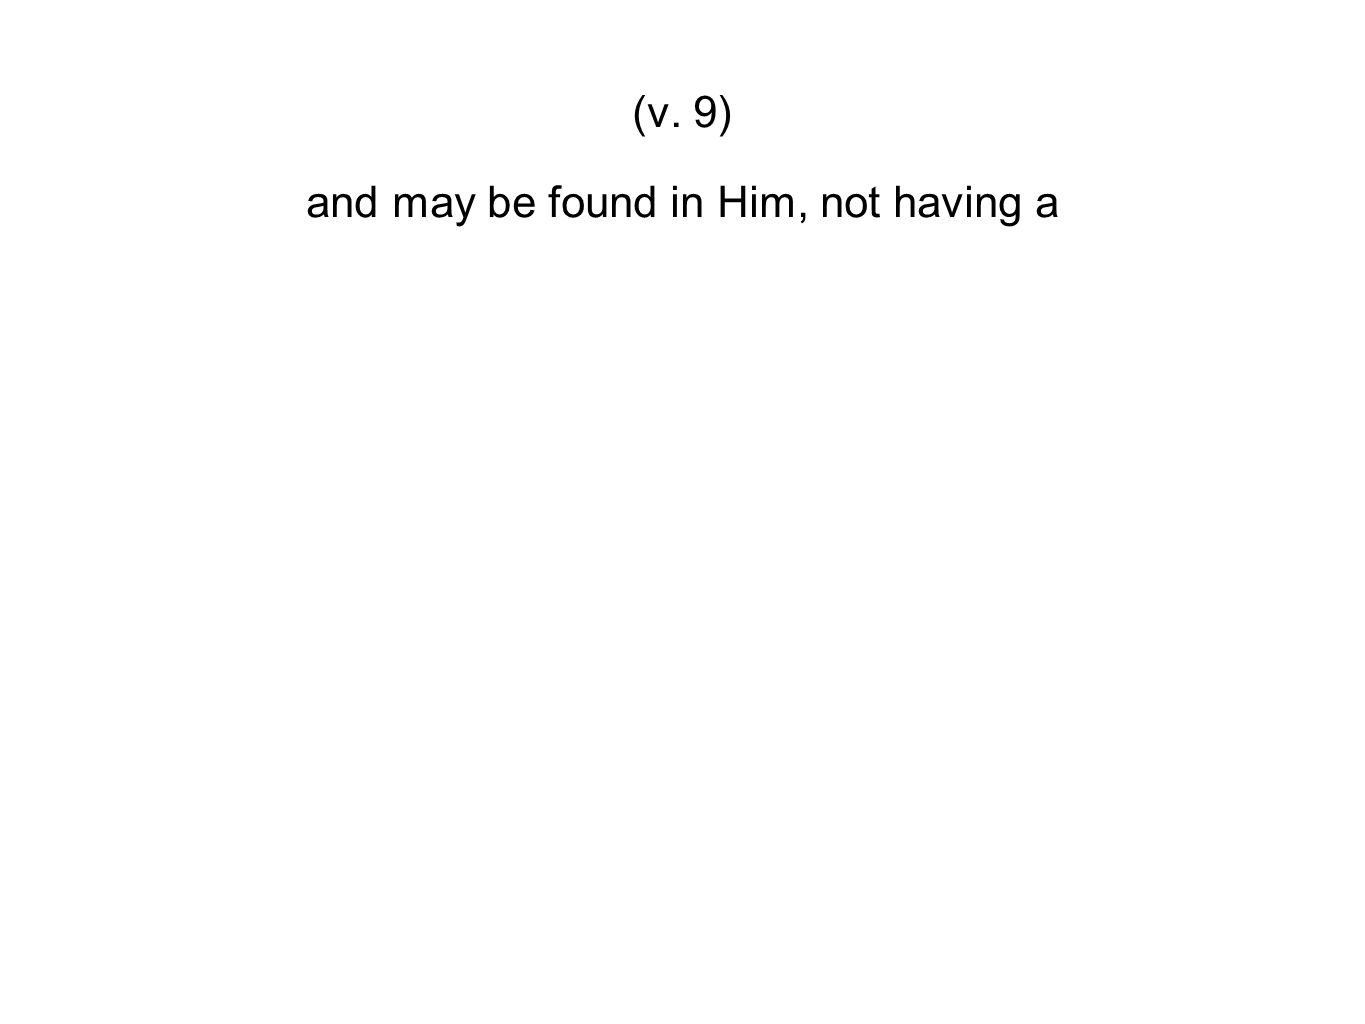 and may be found in Him, not having a